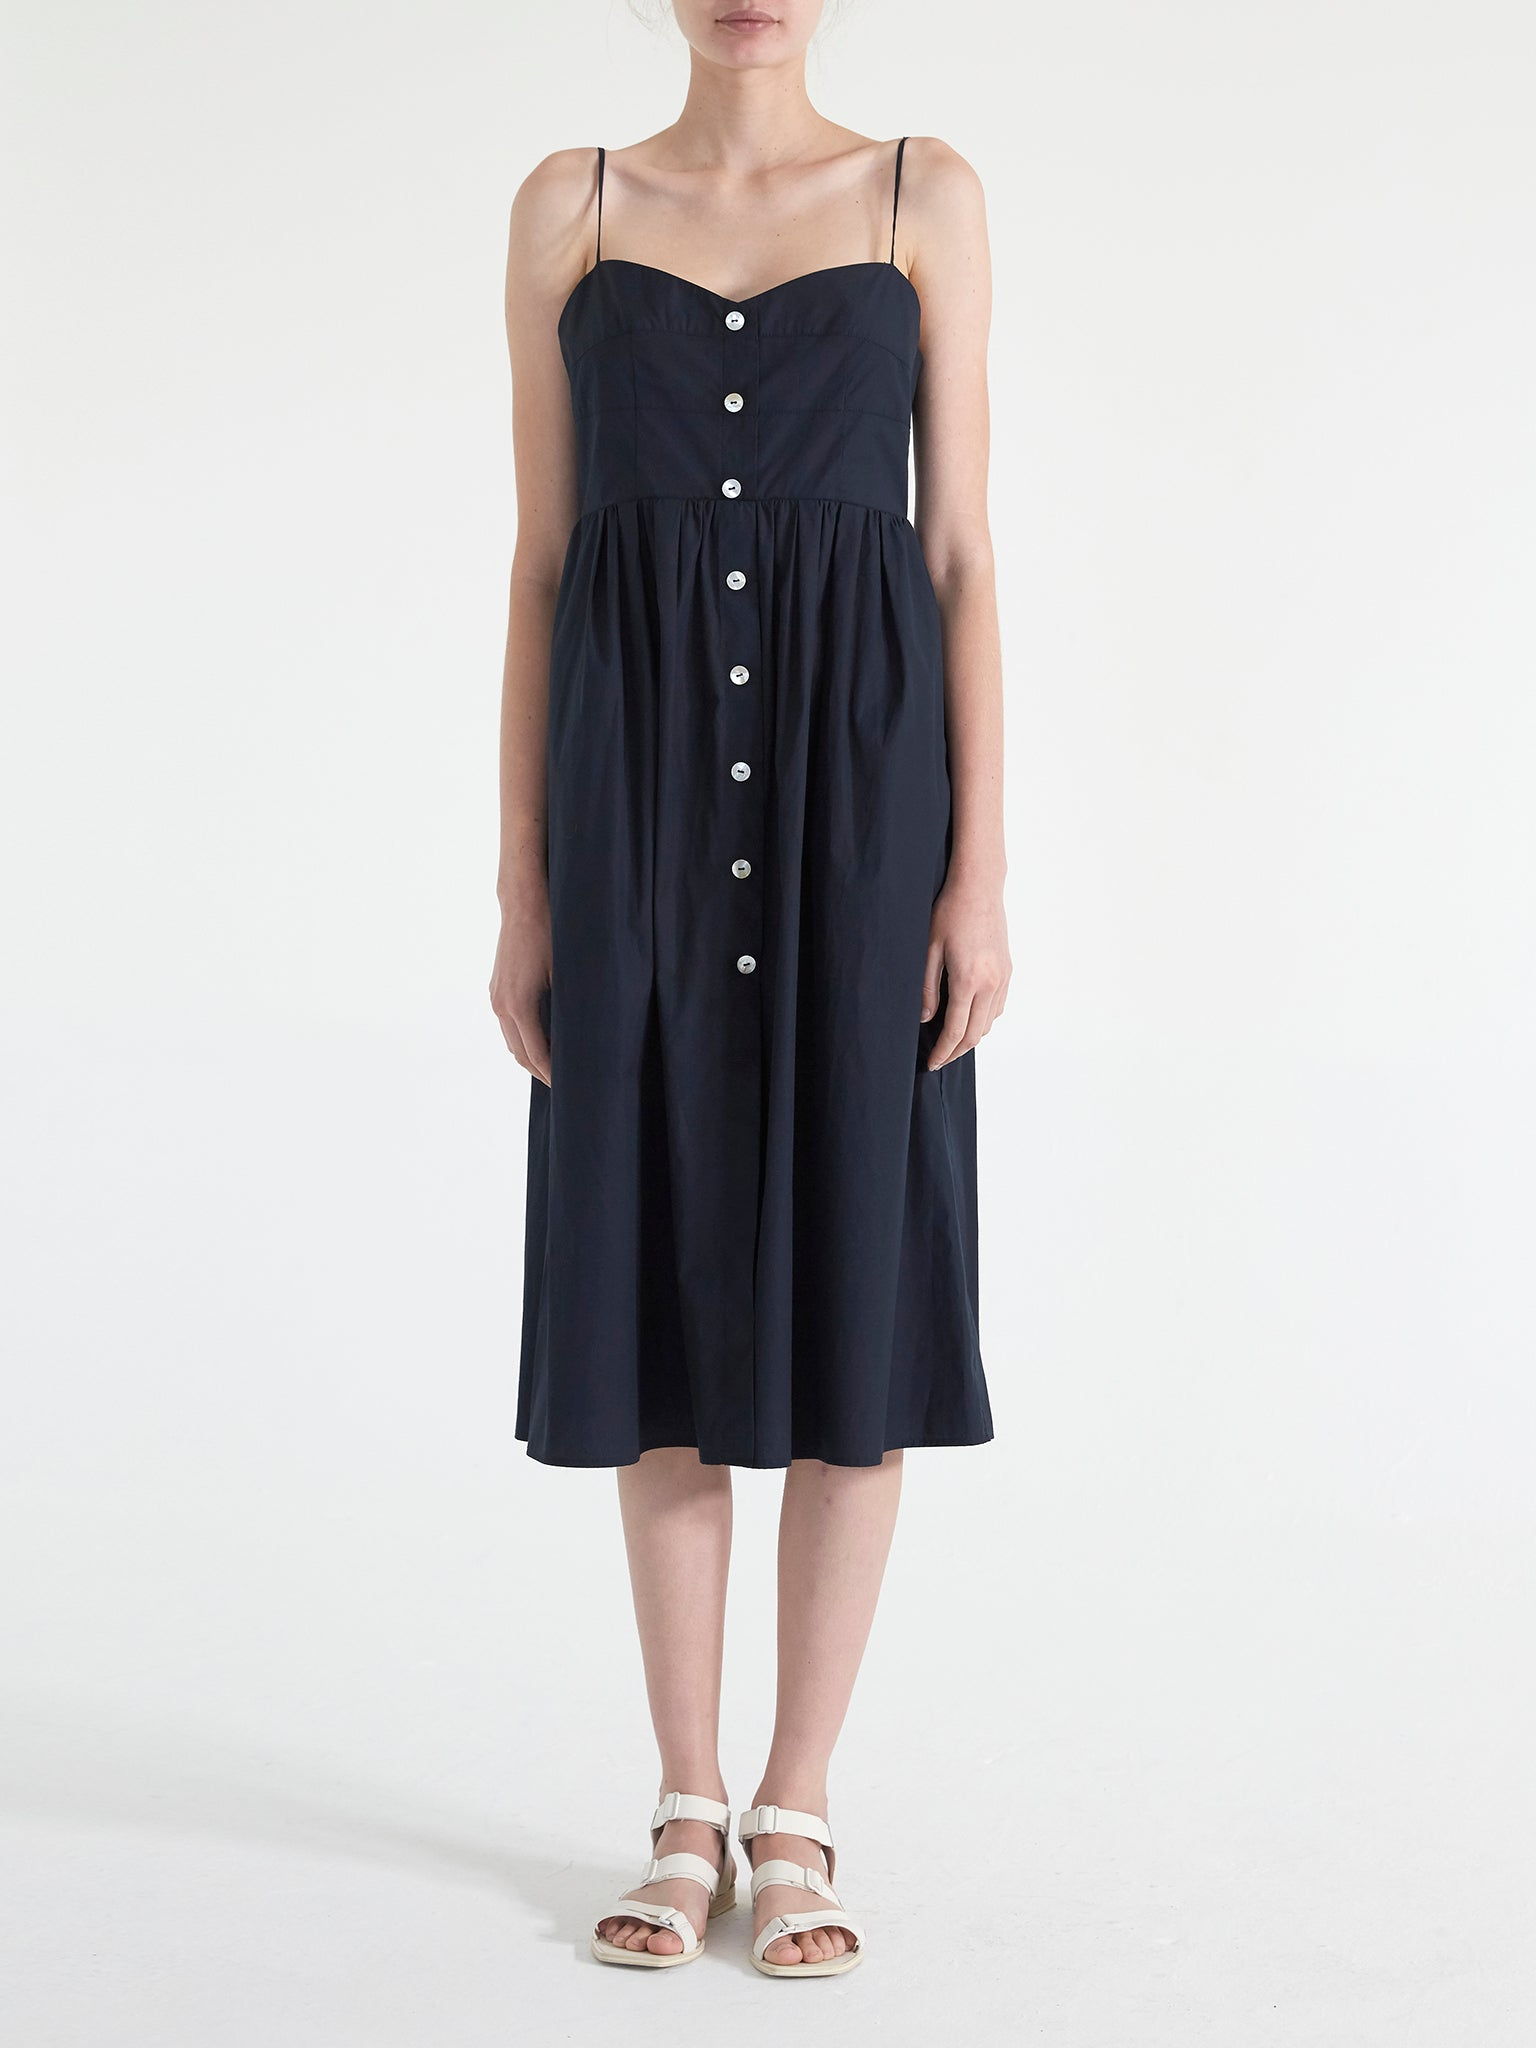 Nicole Poplin Midi Dress